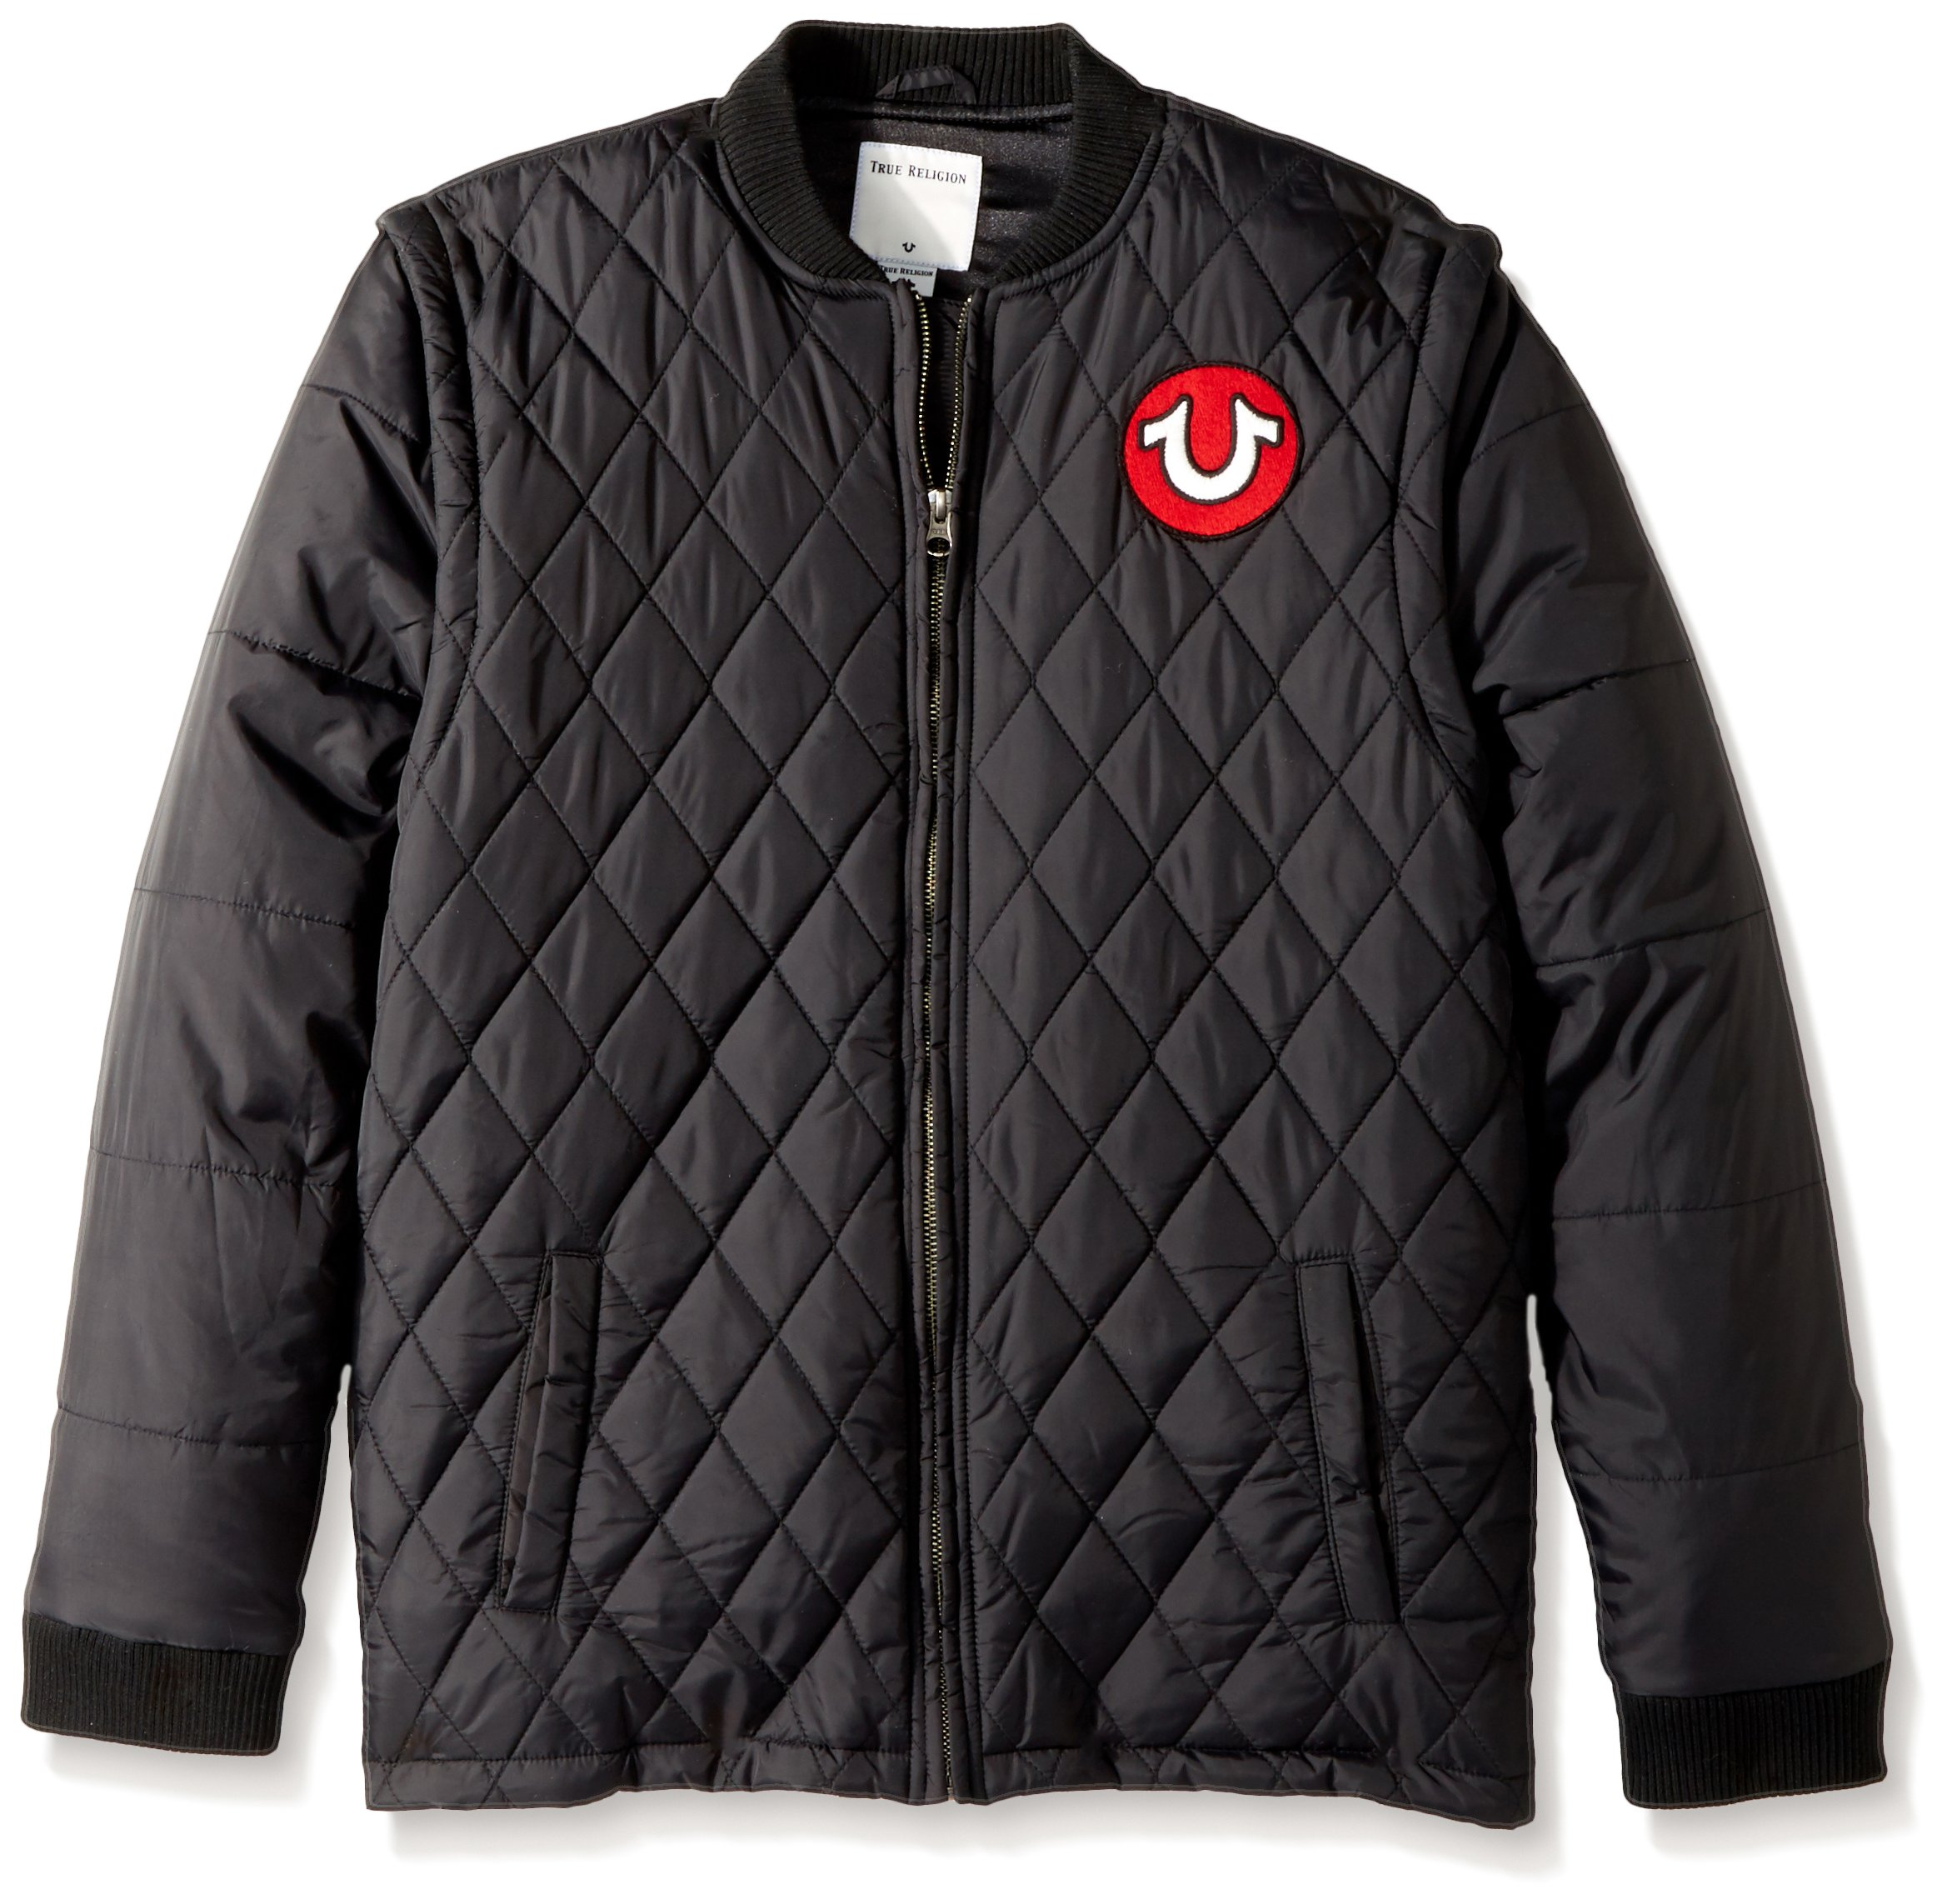 True Religion Big Boys' Quilted Jacket, Black, S